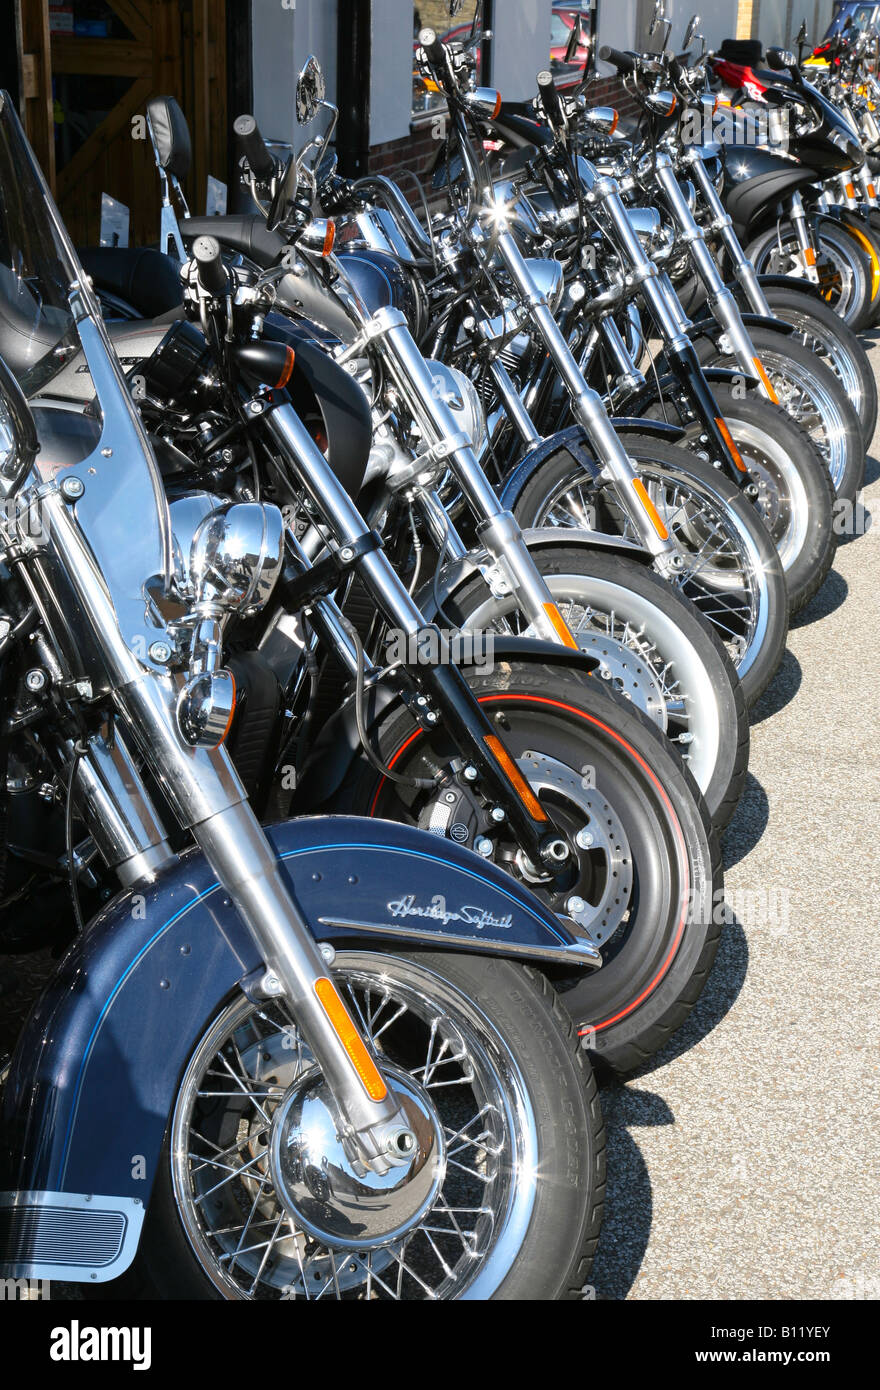 A row of Harley Davidson motorbikes, Newmarket, Suffolk, England - Stock Image